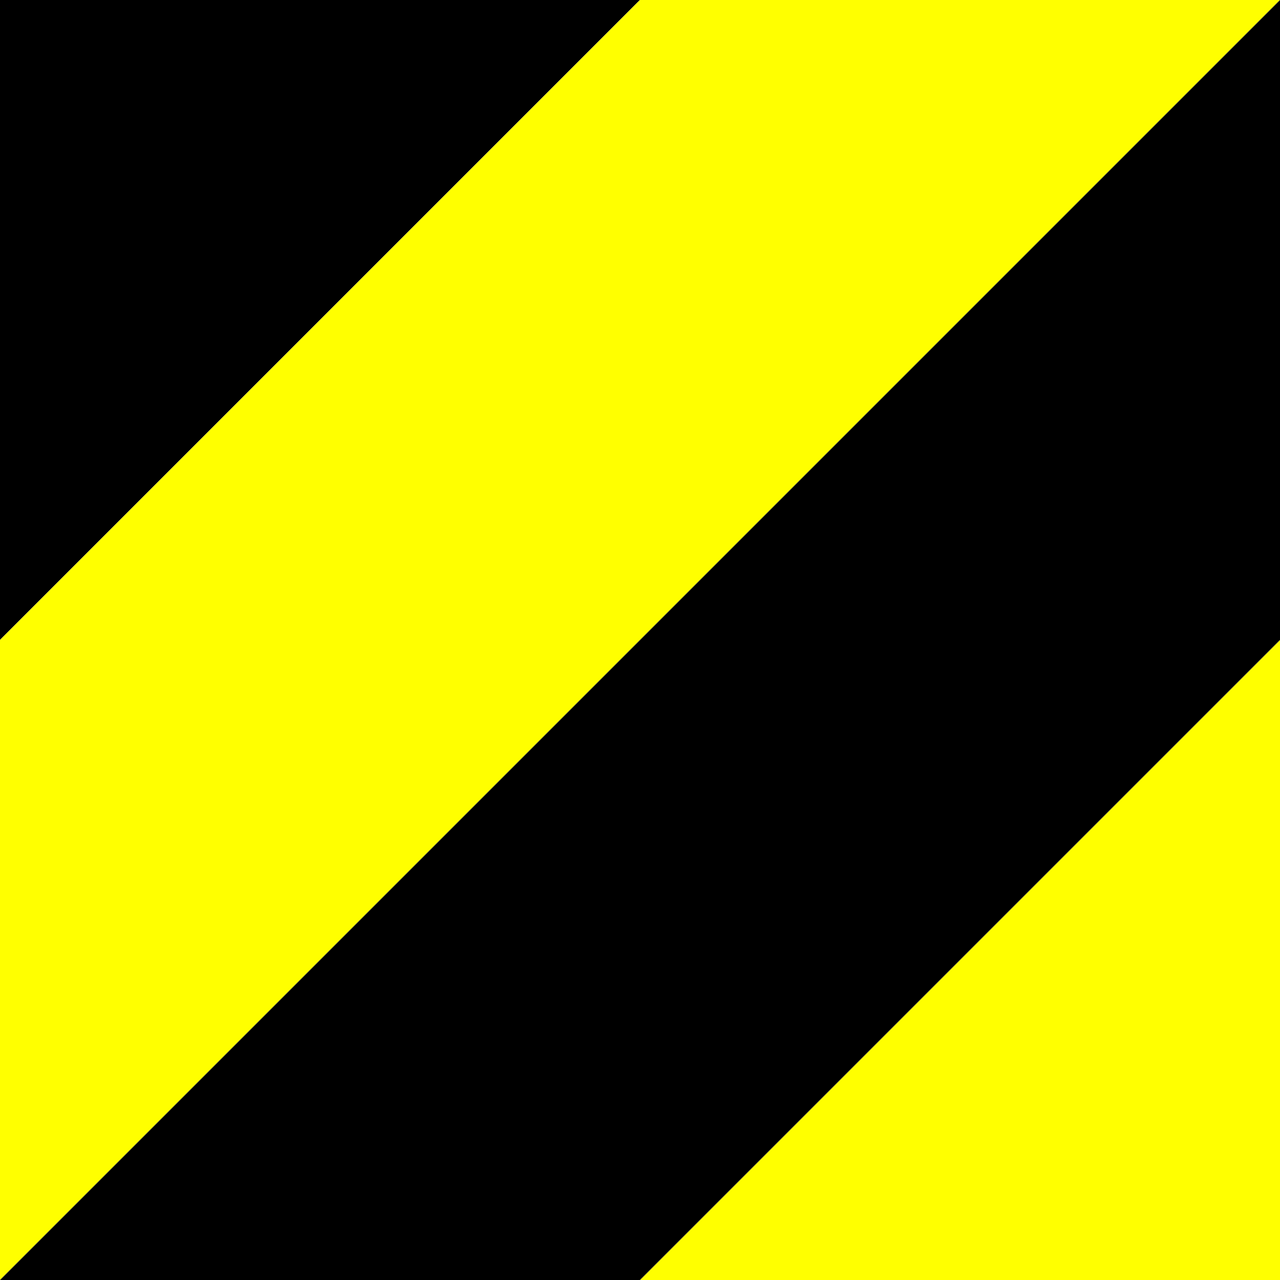 pattern black yellow free photo